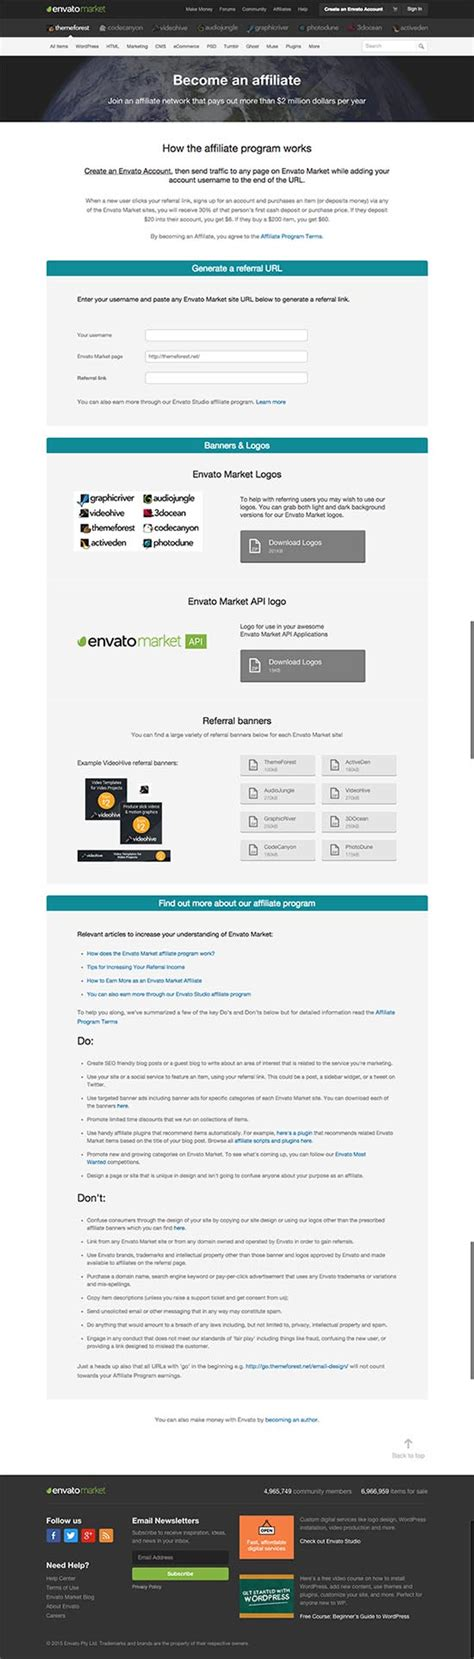 Cara Membuat Program Affiliasi Sendiri Dengan Wordpress. How To Crack Administrator Password. Stormtrooper Pumpkin Stencil. Installation Of Security Cameras. Metlife Disability Claim Clear Adhesive Label. Improving Internet Speed Aig Asset Management. Jewelry Stores Buying Jewelry. What Are Some Cardiovascular Exercises. Xfinity Alarm System Prices Free Domain Com